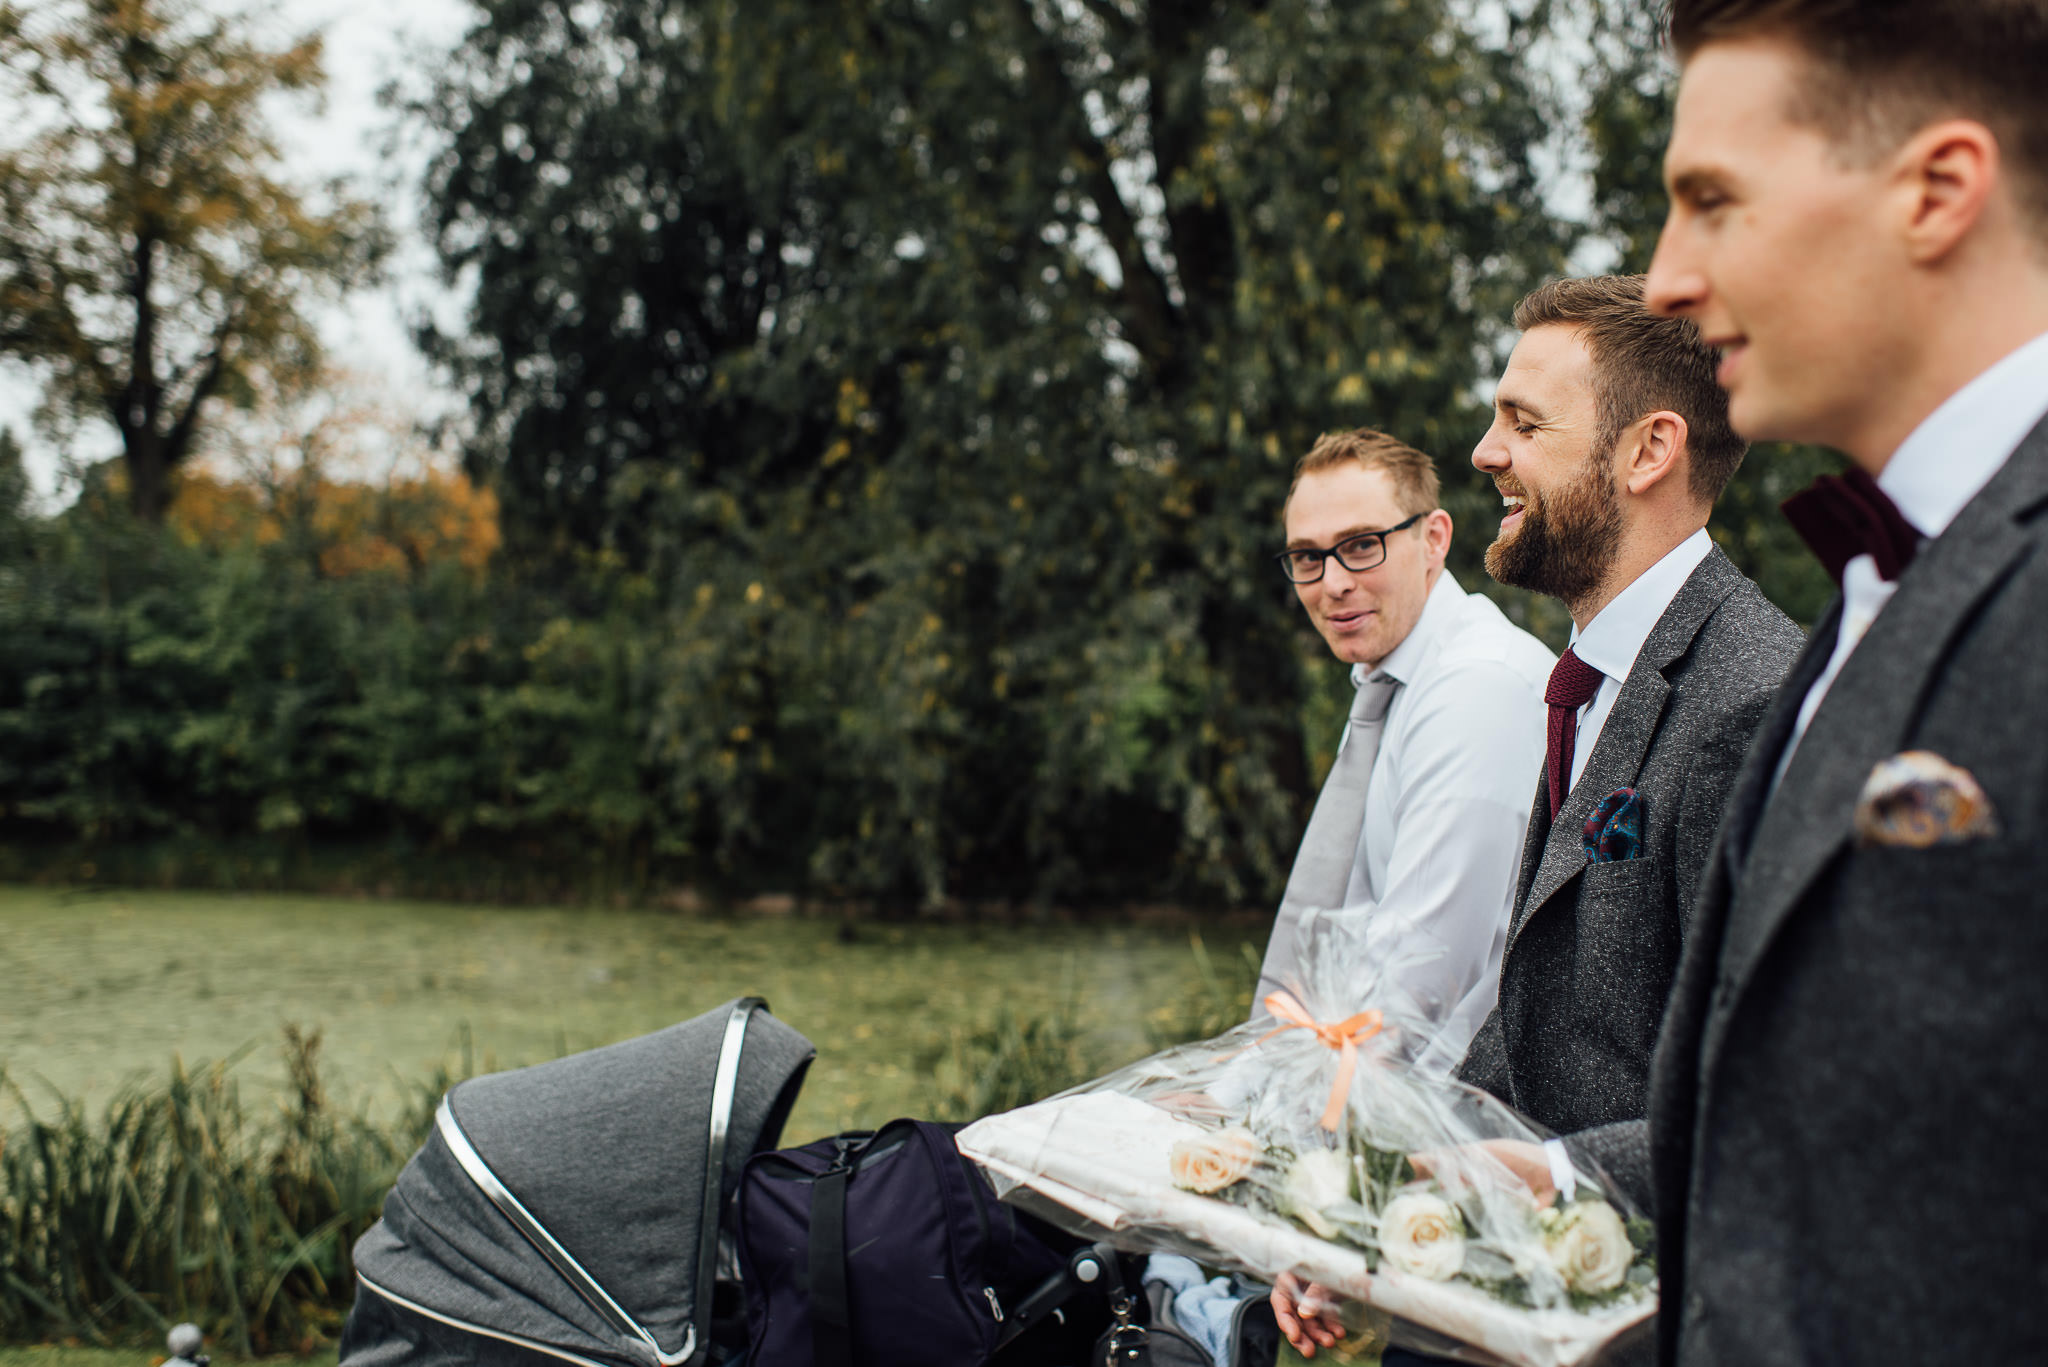 Groom in clissold park in stoke newington town hall wedding by creative and alternative london wedding photographer the shannons photography